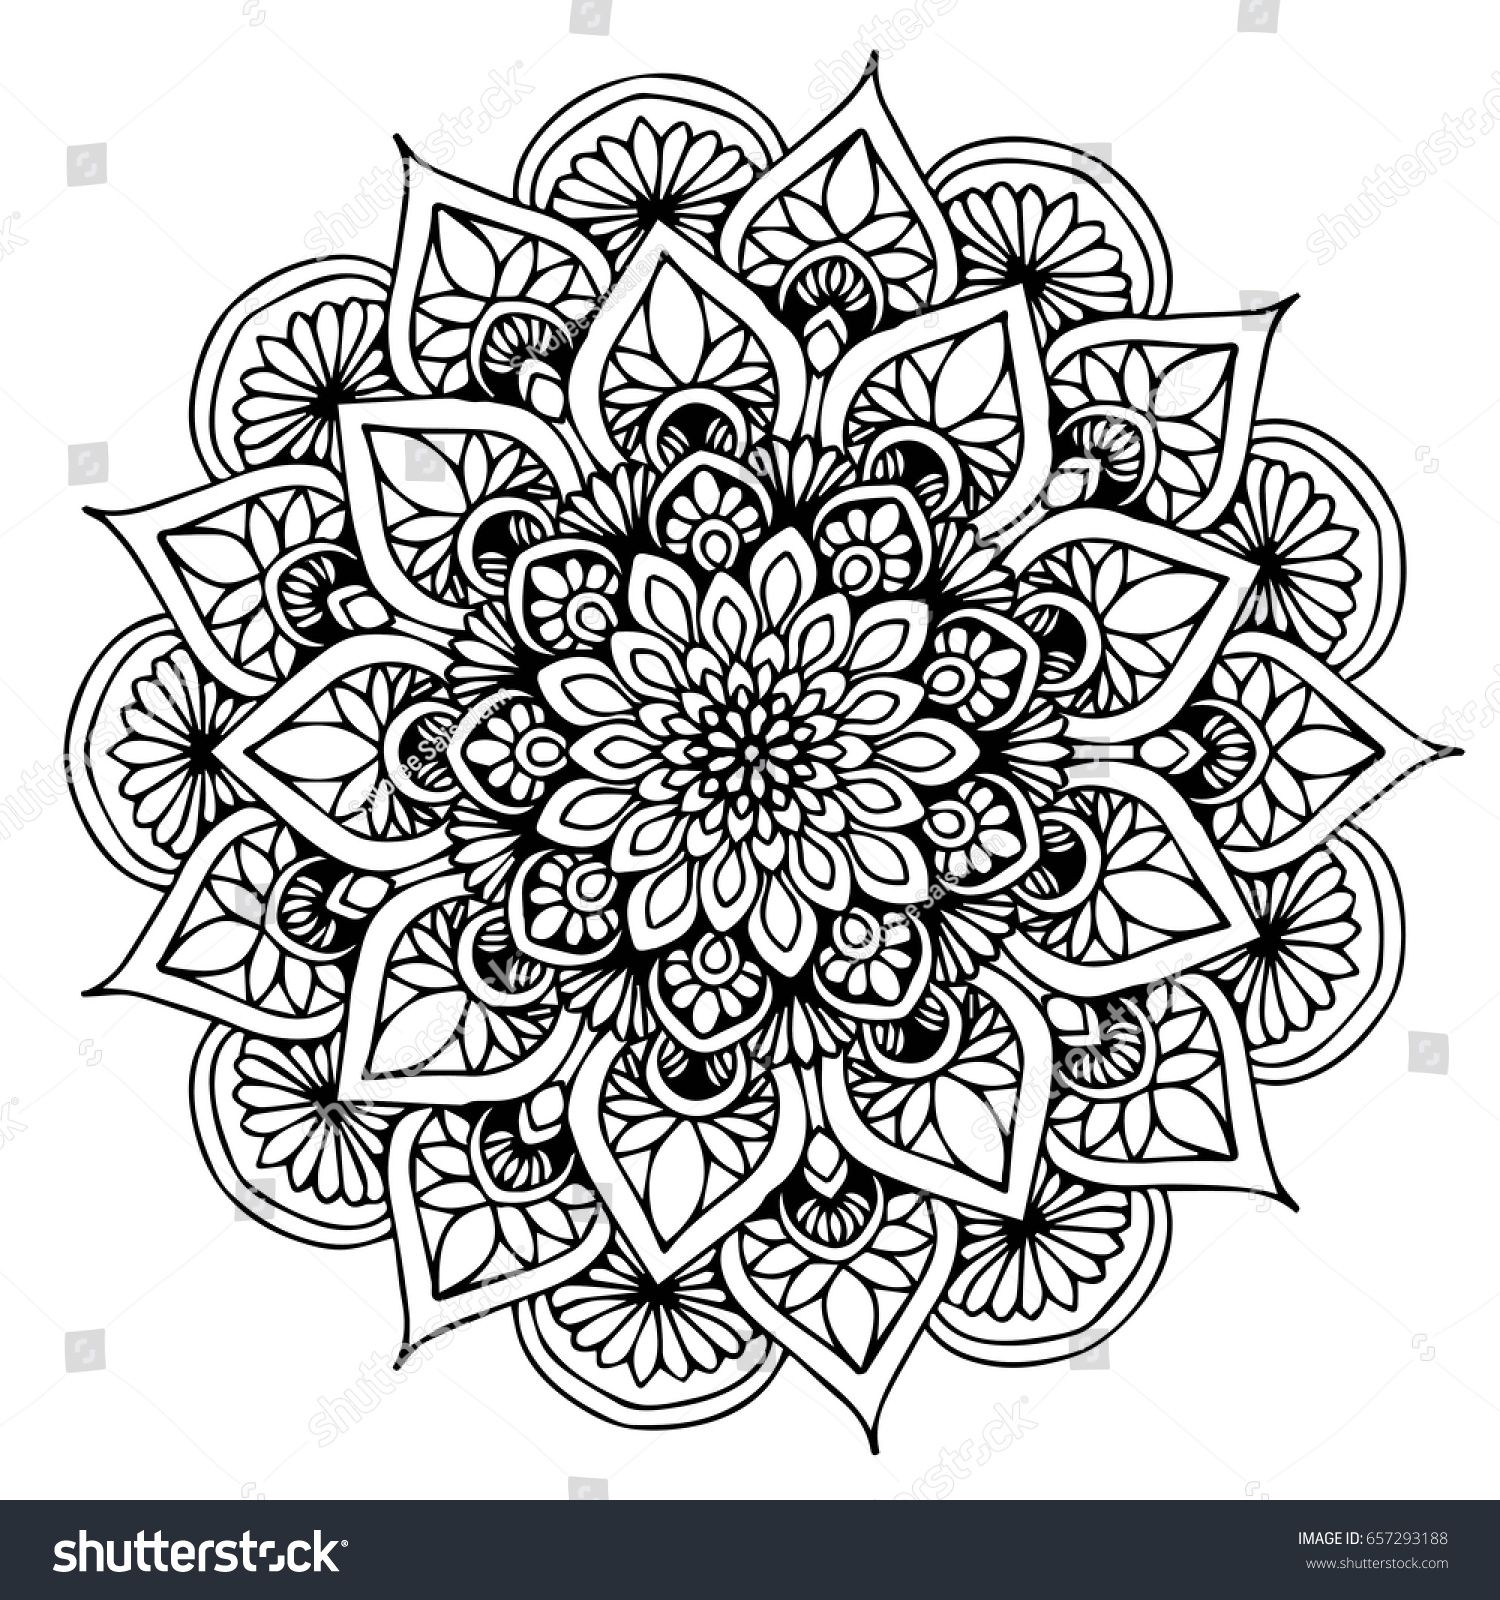 Mandalas for coloring book. Decorative round ornaments. Unusual flower shape. Oriental vector, Anti-stress